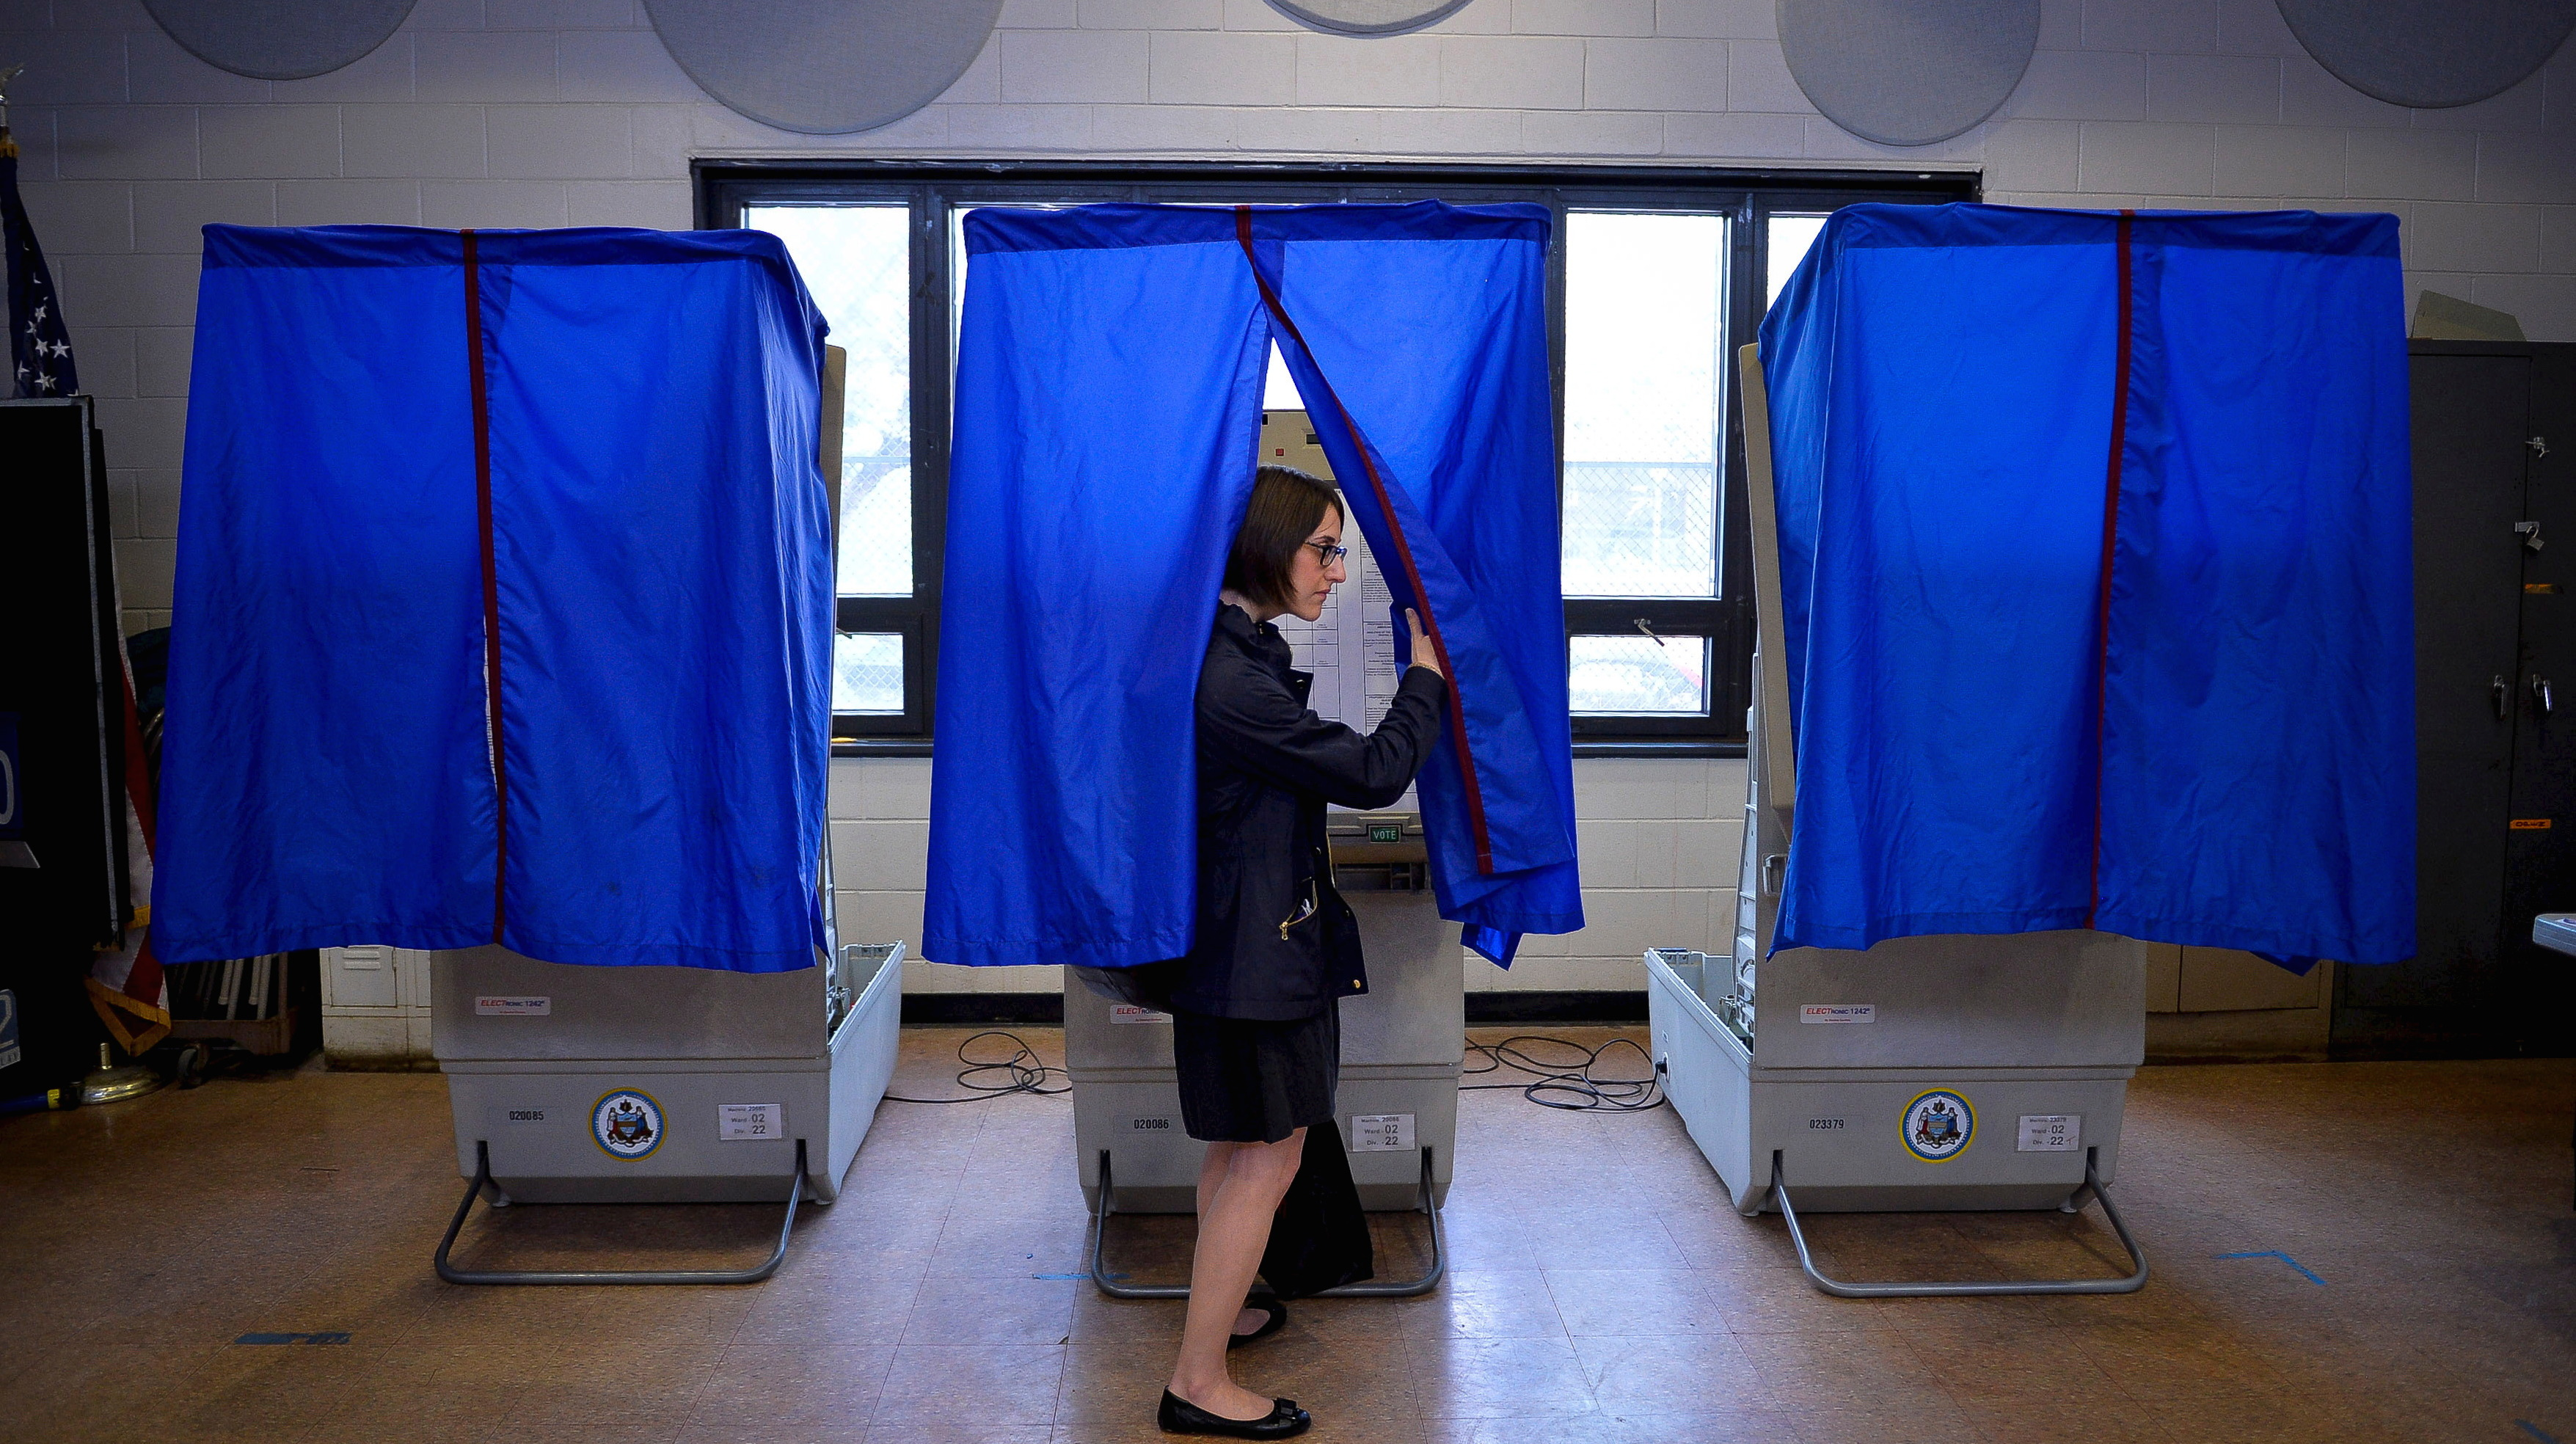 File photo of a voter leaving the booth after casting her ballot in the Pennsylvania primary at a polling place in Philadelphia